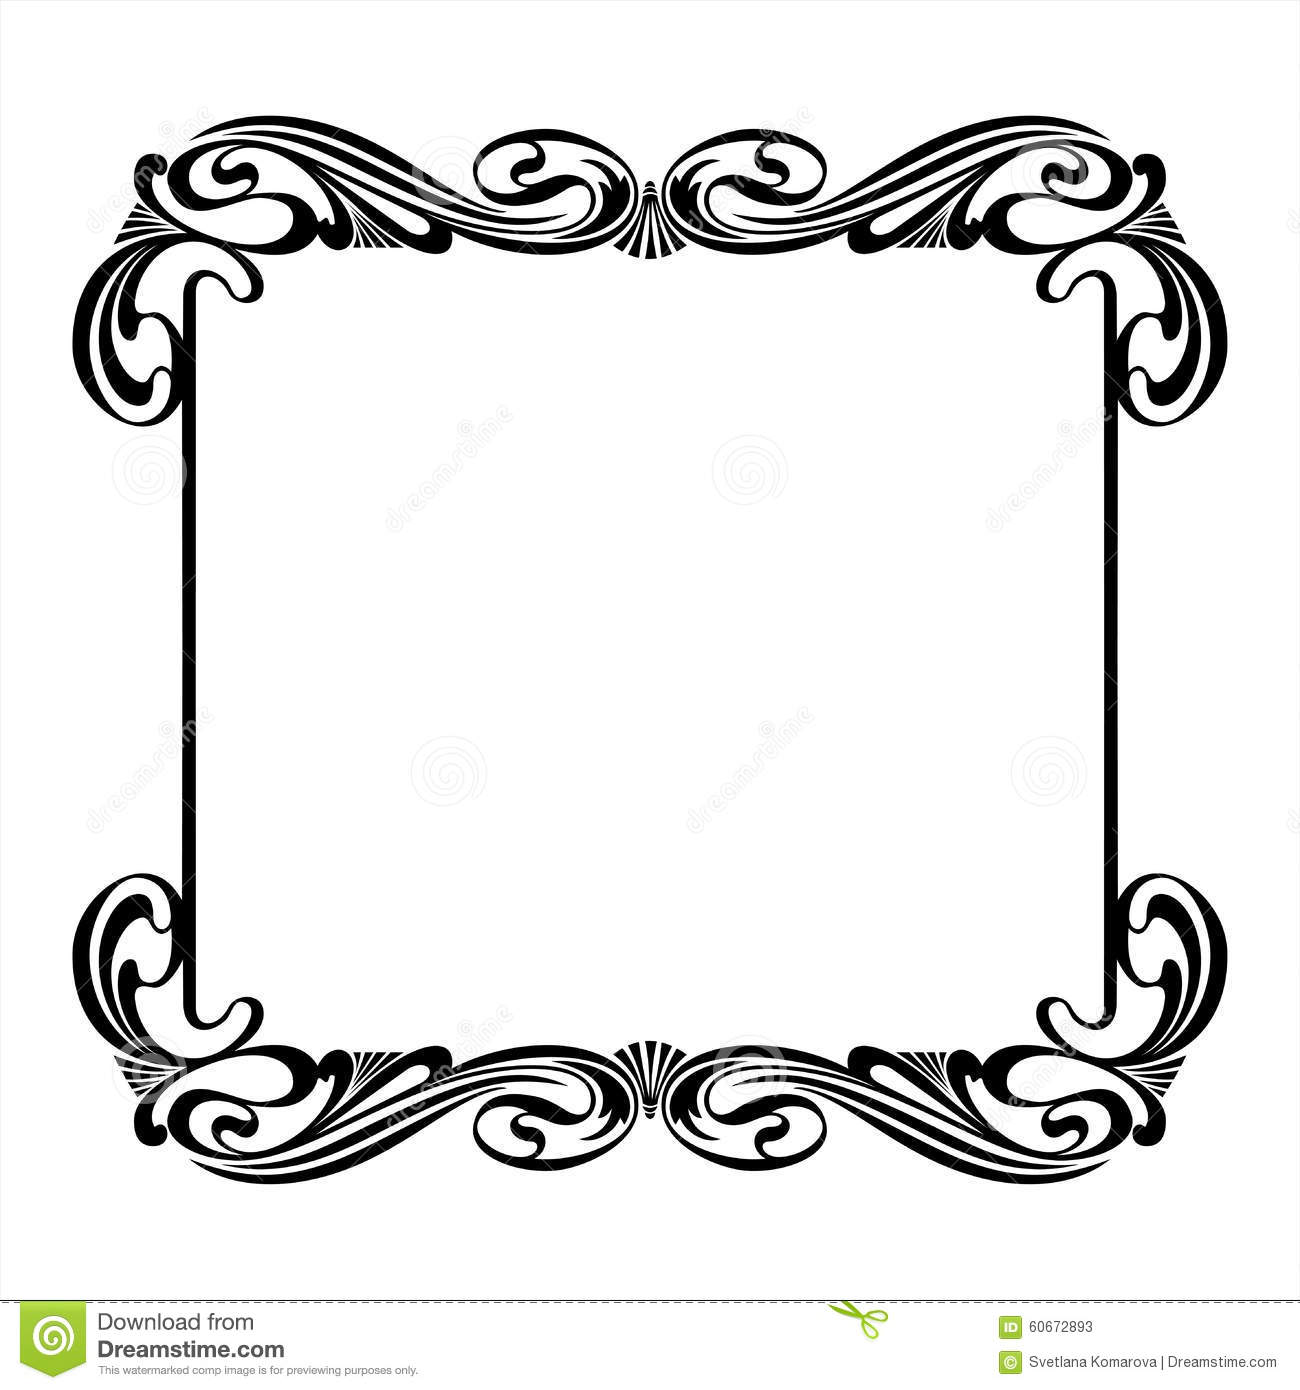 Black Decorative Square Frame In The Art Nouveau Style ...Fancy Square Frame